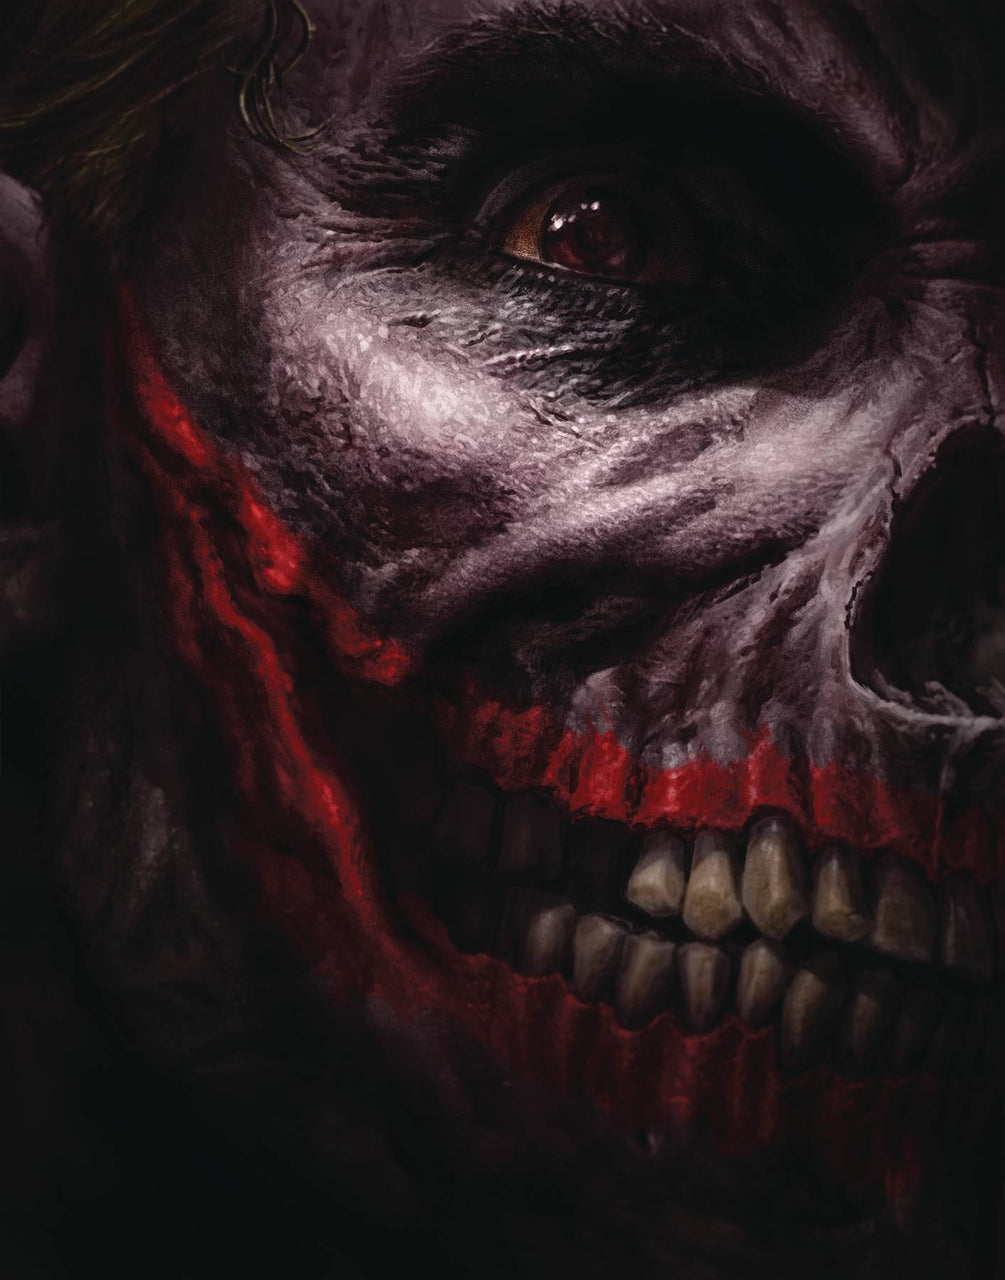 Batman Damned issue #3